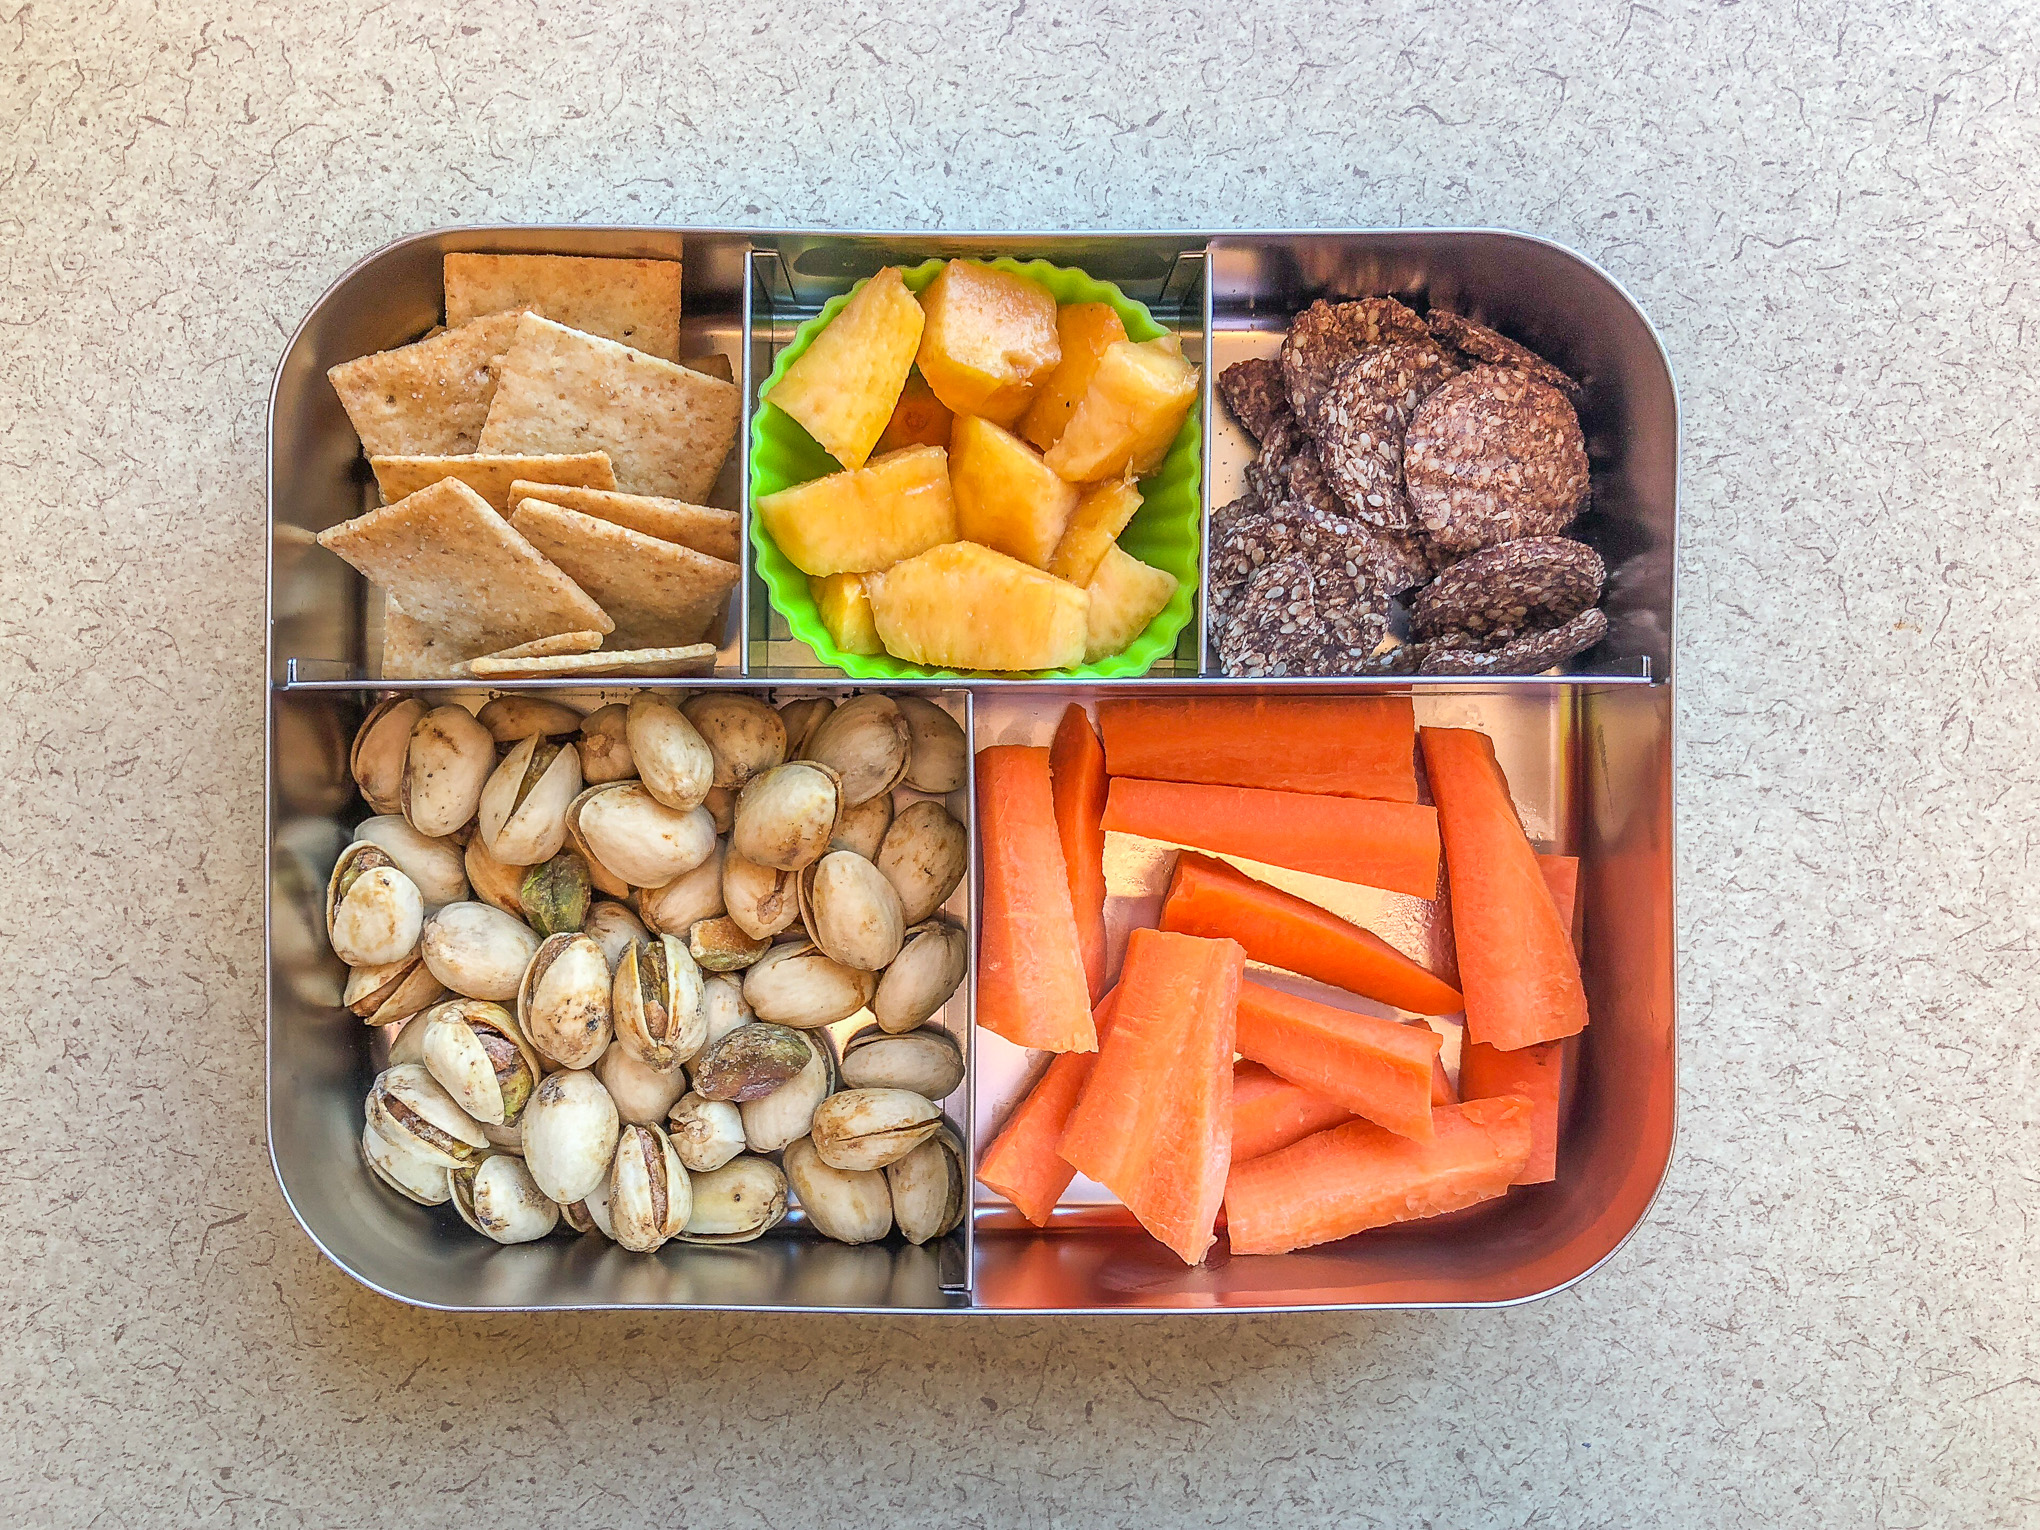 Metal lunch box filled with crackers and pistachios